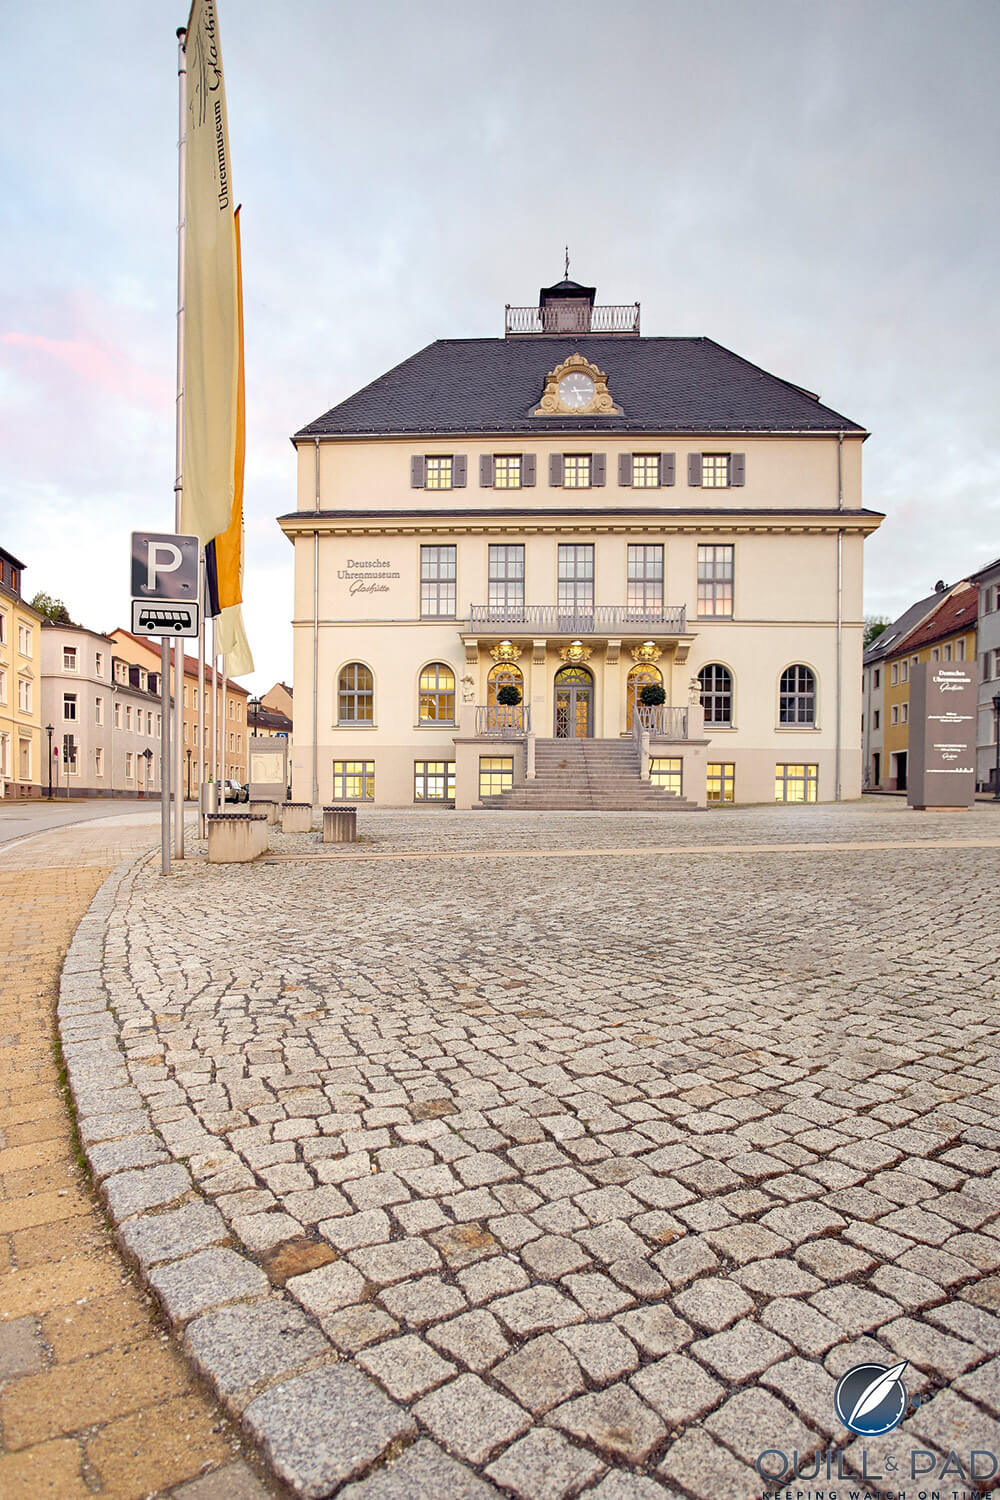 German Watchmaking Museum in 2018 post-renovation